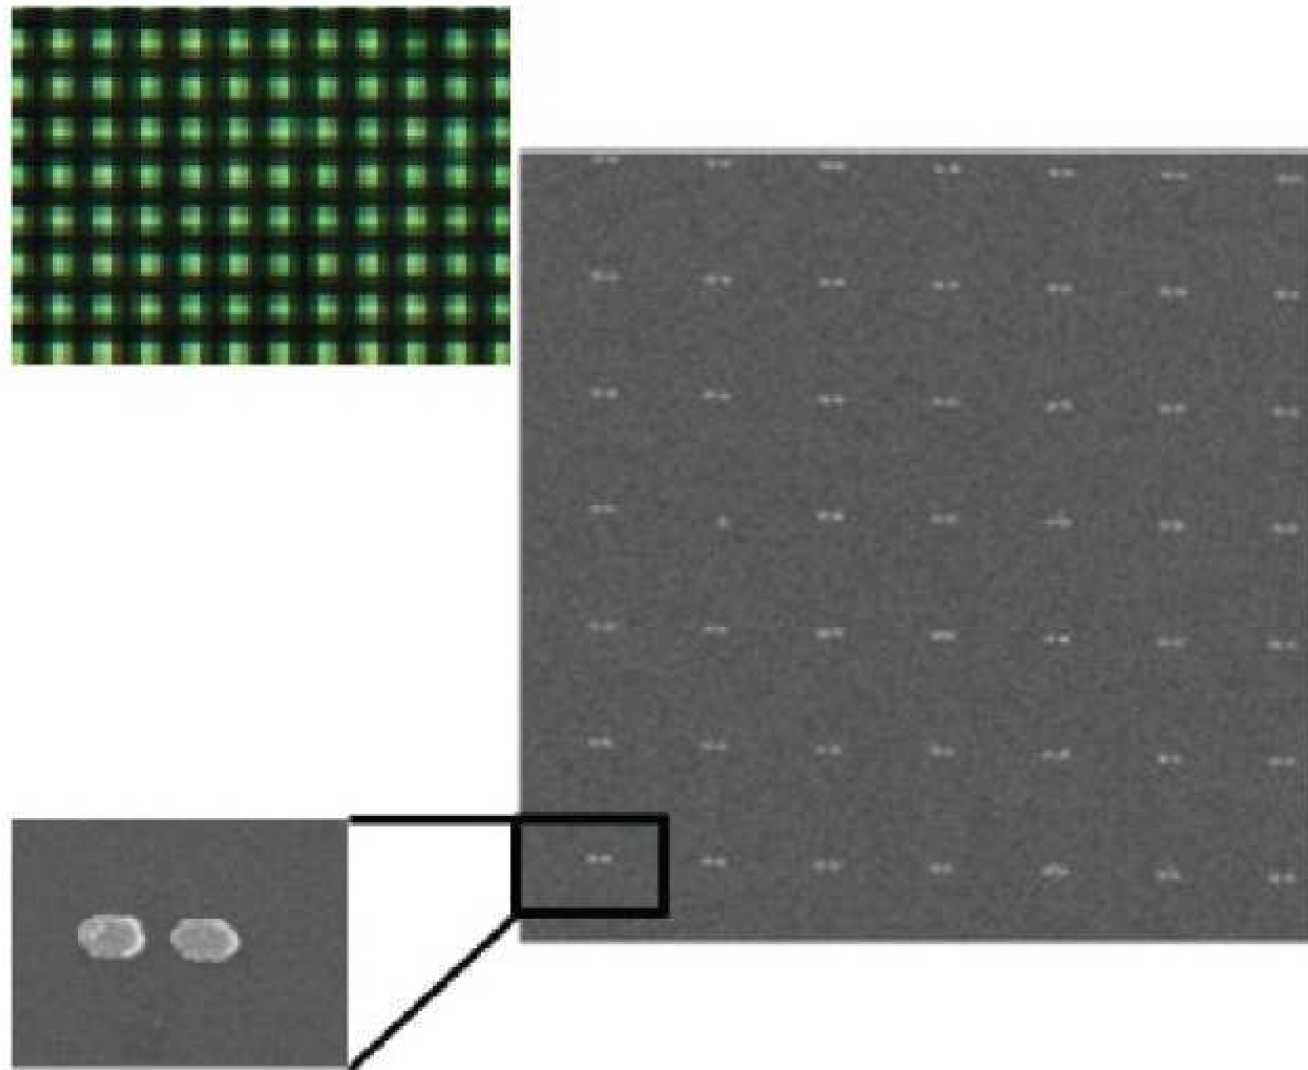 Electron microscope and optical scattering images of bow tie nanoantennas designed for light concentration of the colour green